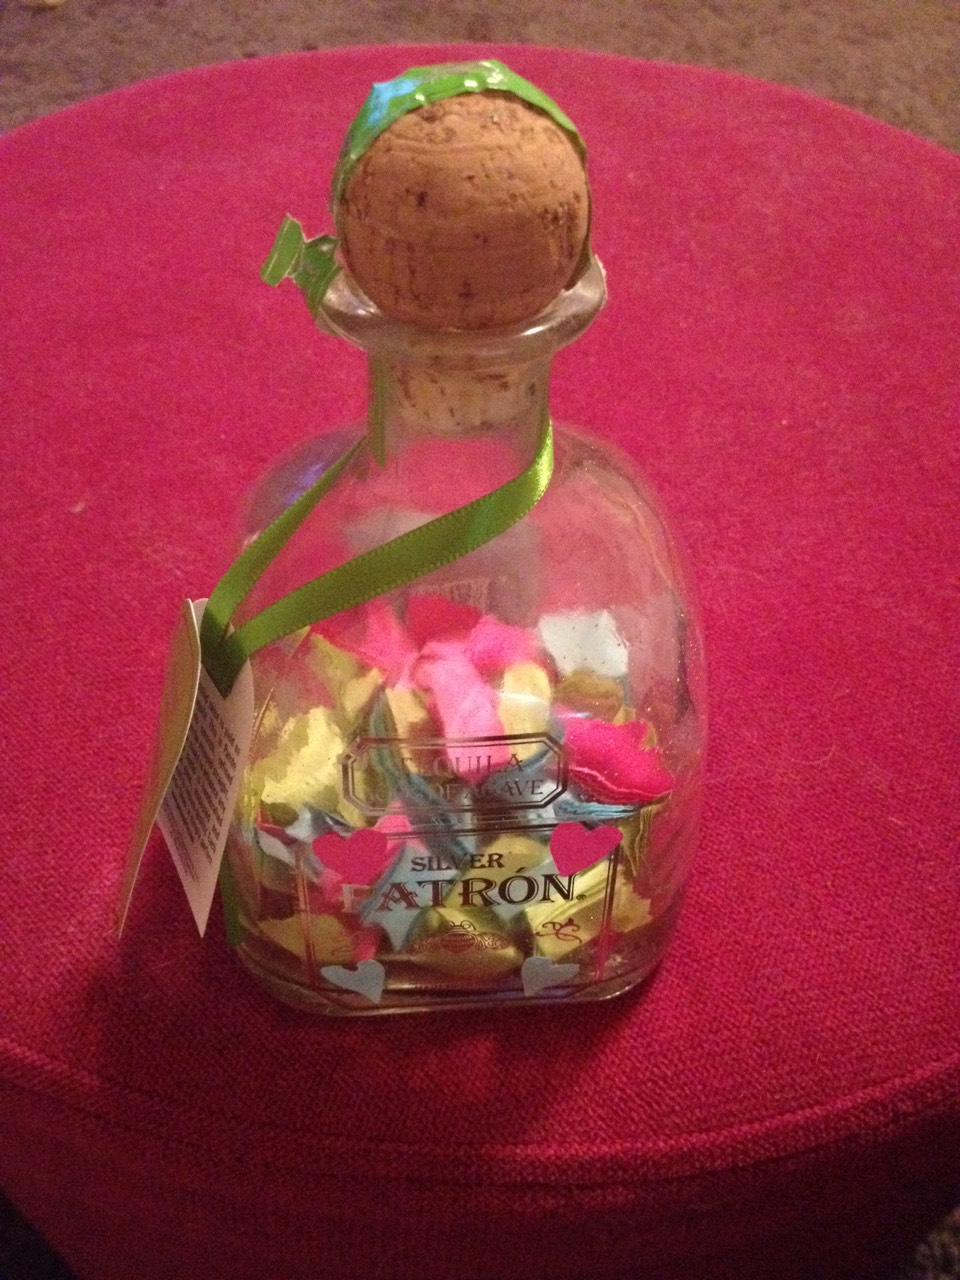 Now fill your bottle with your special notes!! When finished wrap up all pretty and give it to that special person.